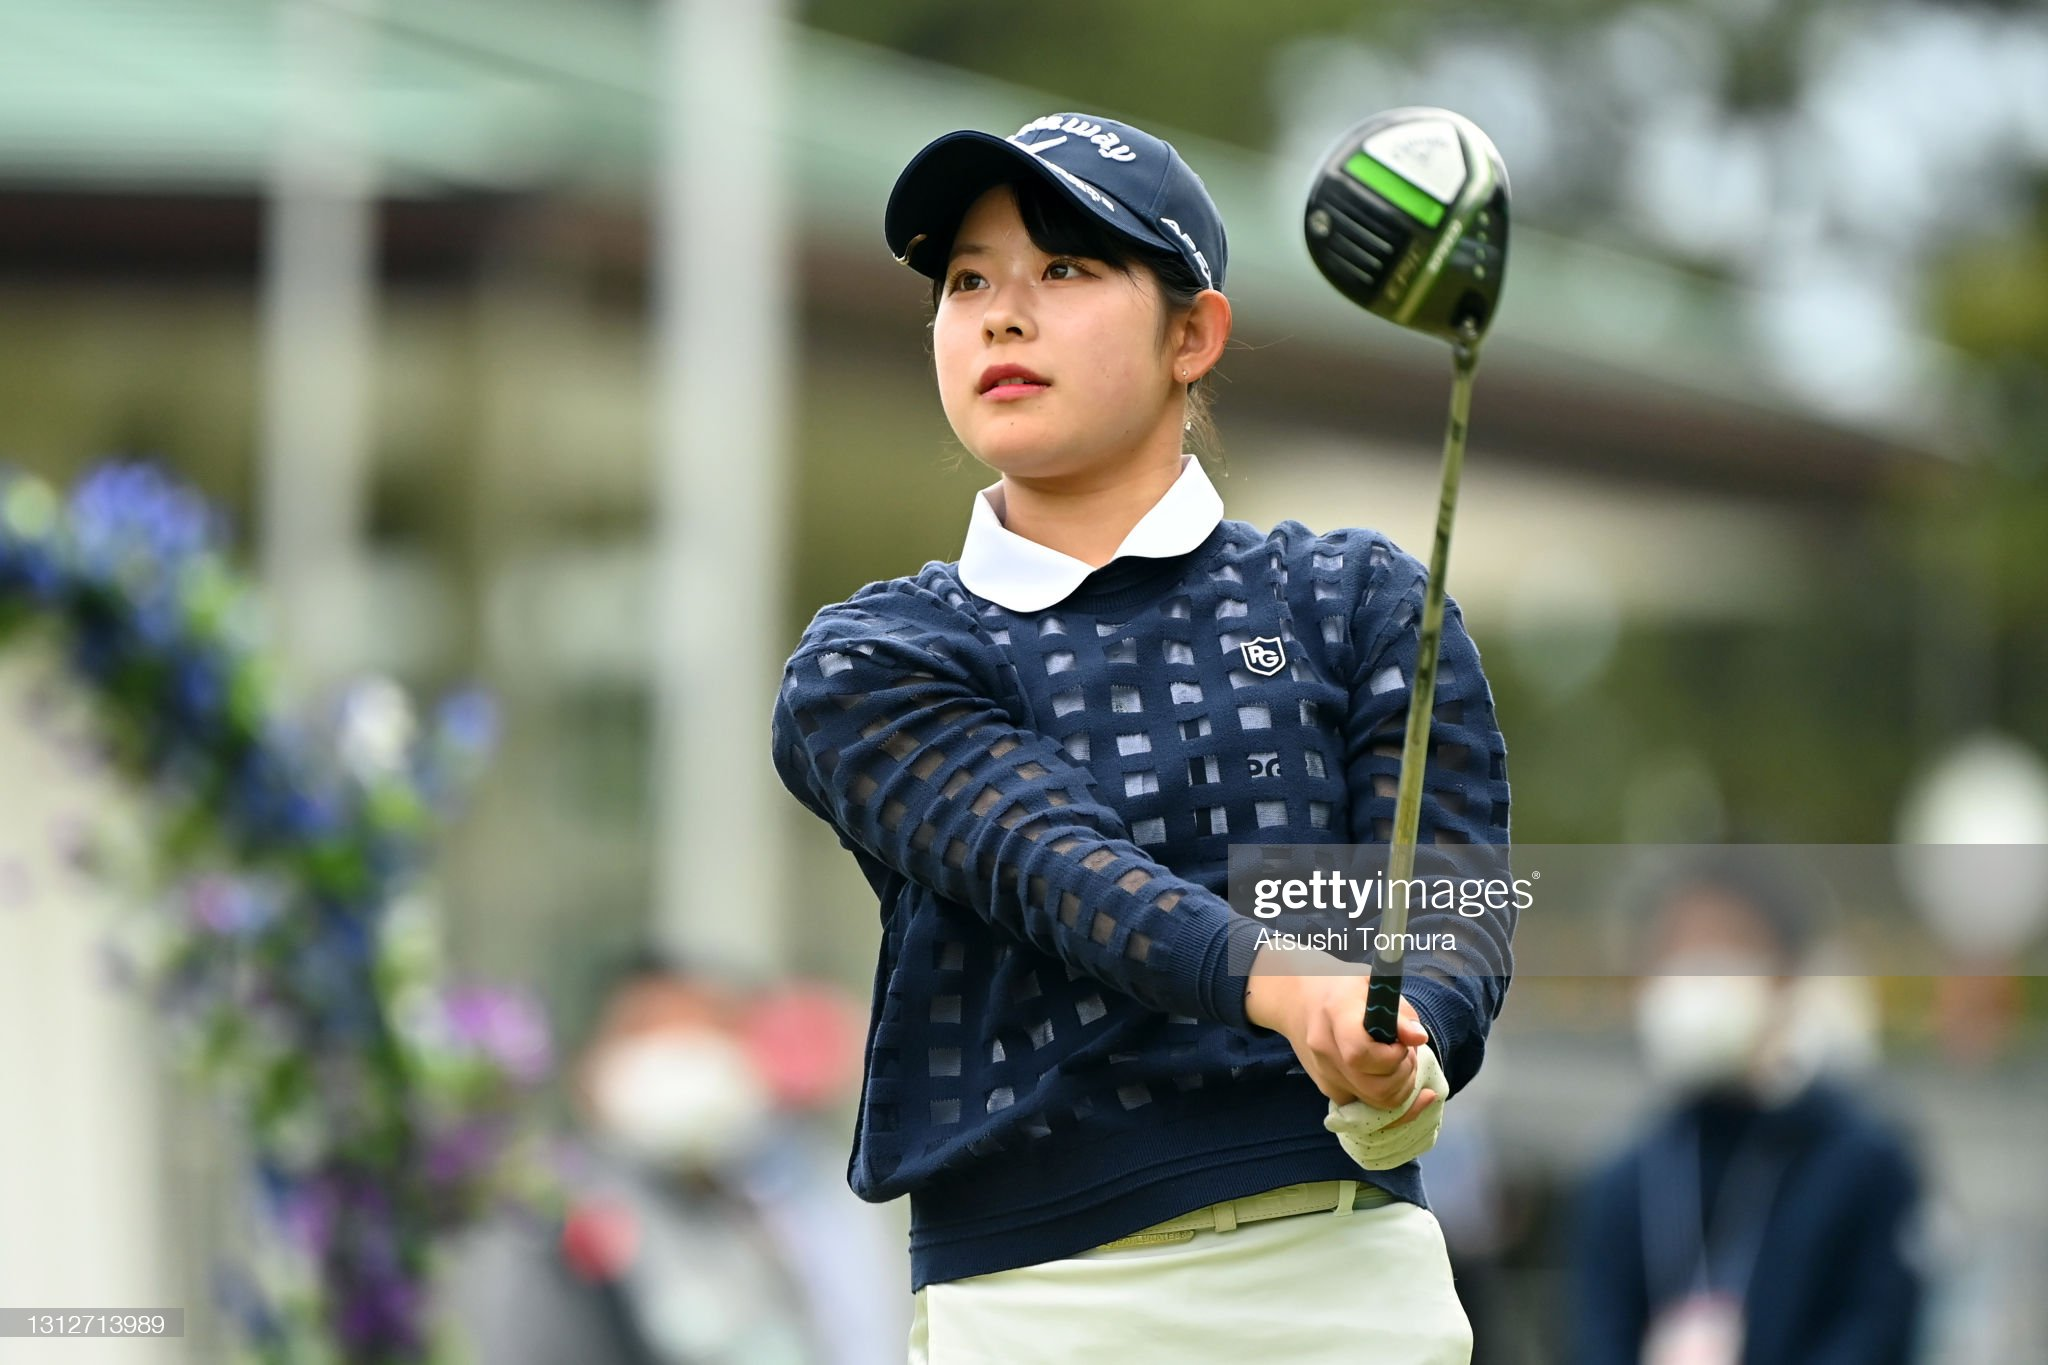 https://media.gettyimages.com/photos/amateur-rin-yoshida-of-japan-hits-her-tee-shot-on-the-1st-hole-during-picture-id1312713989?s=2048x2048